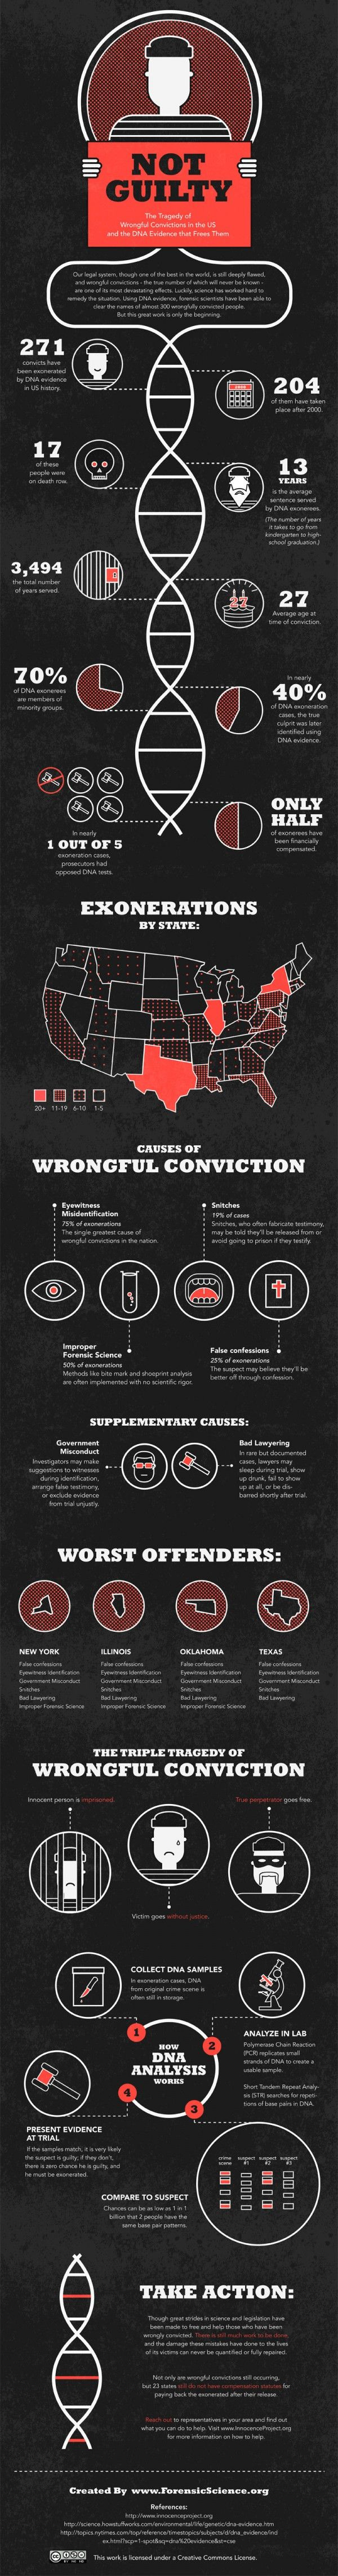 Wrongful Convictions and the DNA Evidence That Frees Them